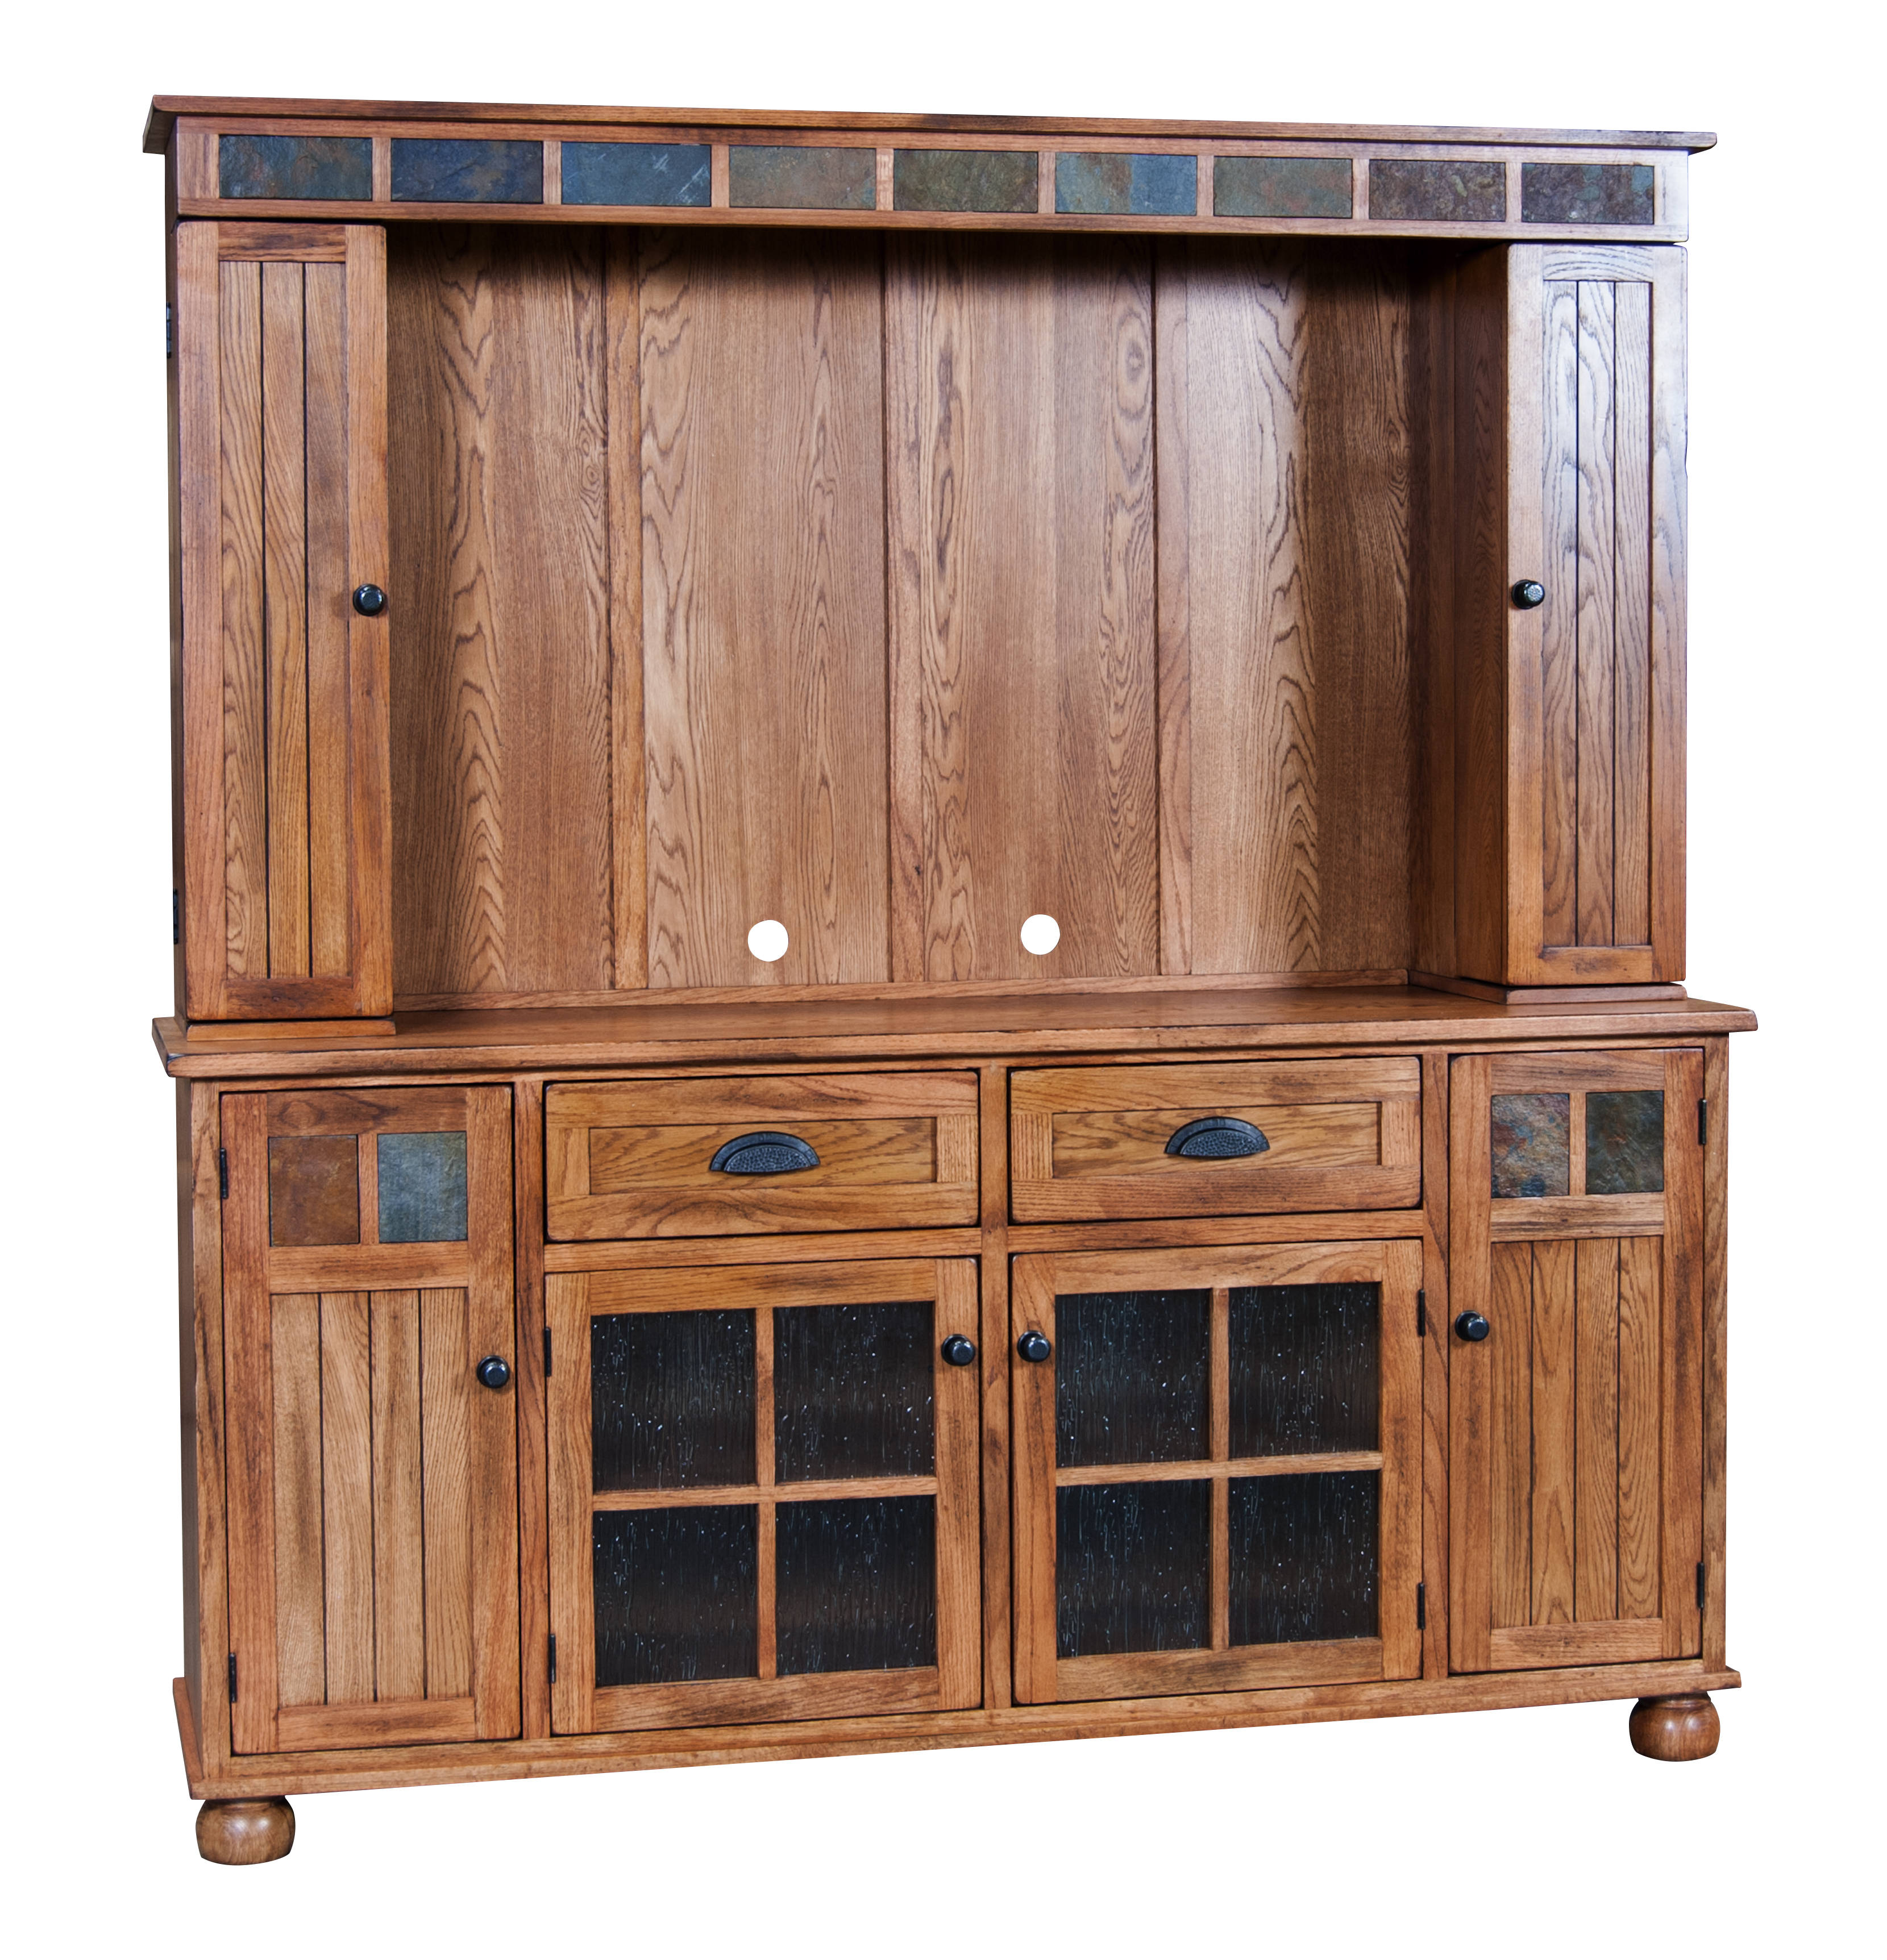 Sunny Designs Sedona Rustic Oak Wood Tv Console Only The Classy Home